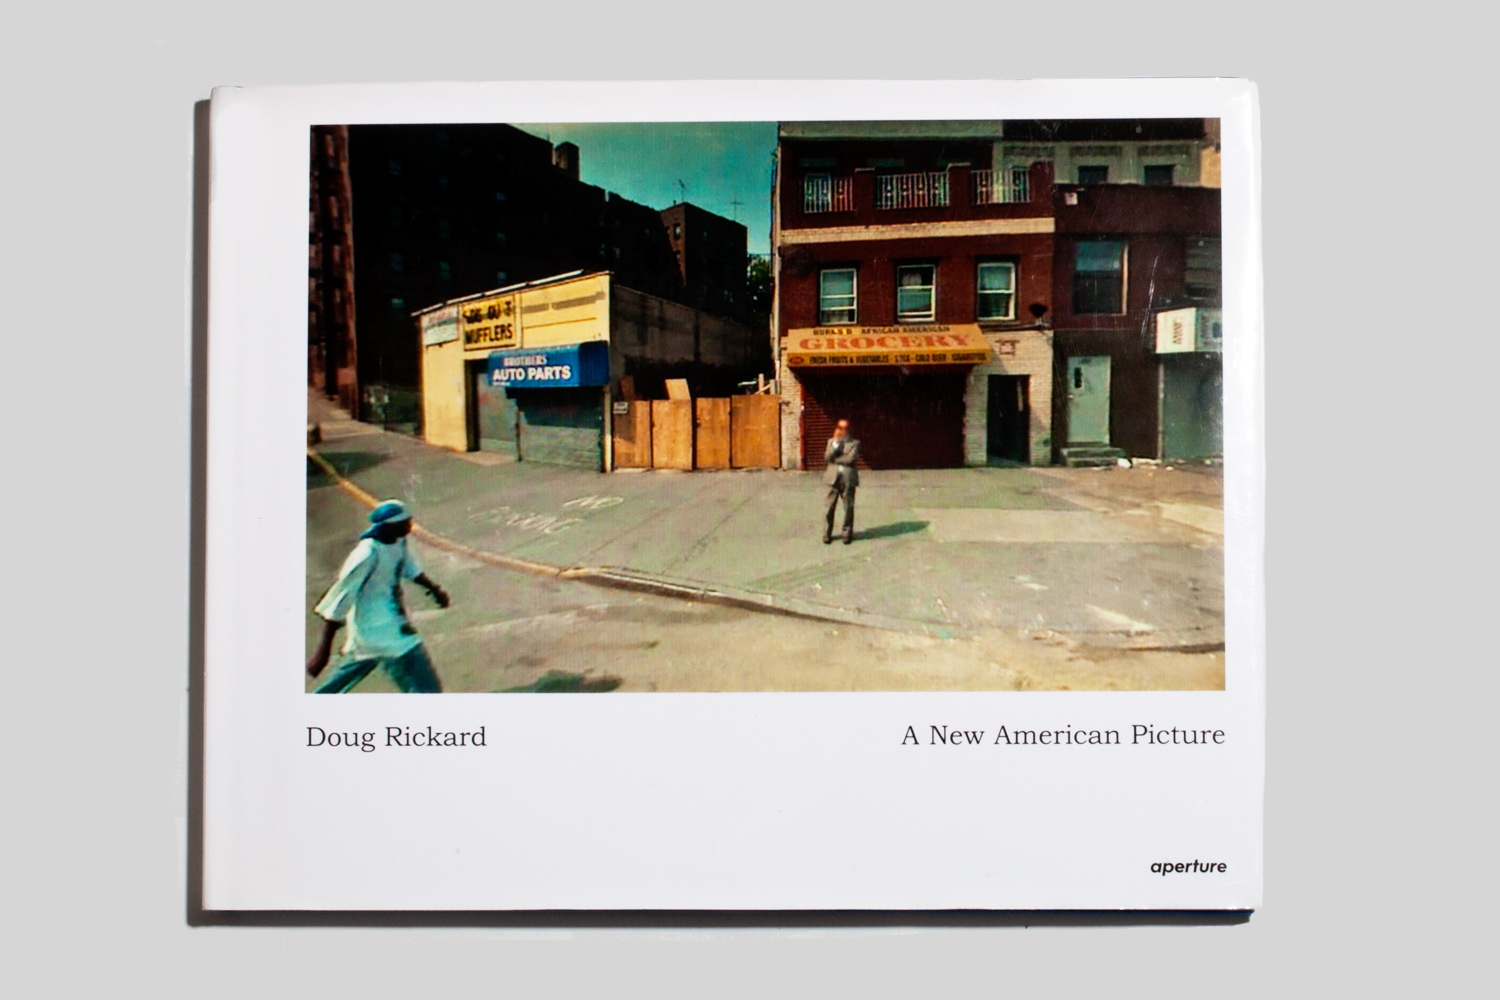 A New American Picture by Doug Rickard, selected by Richard B. Woodward, art critic and writer